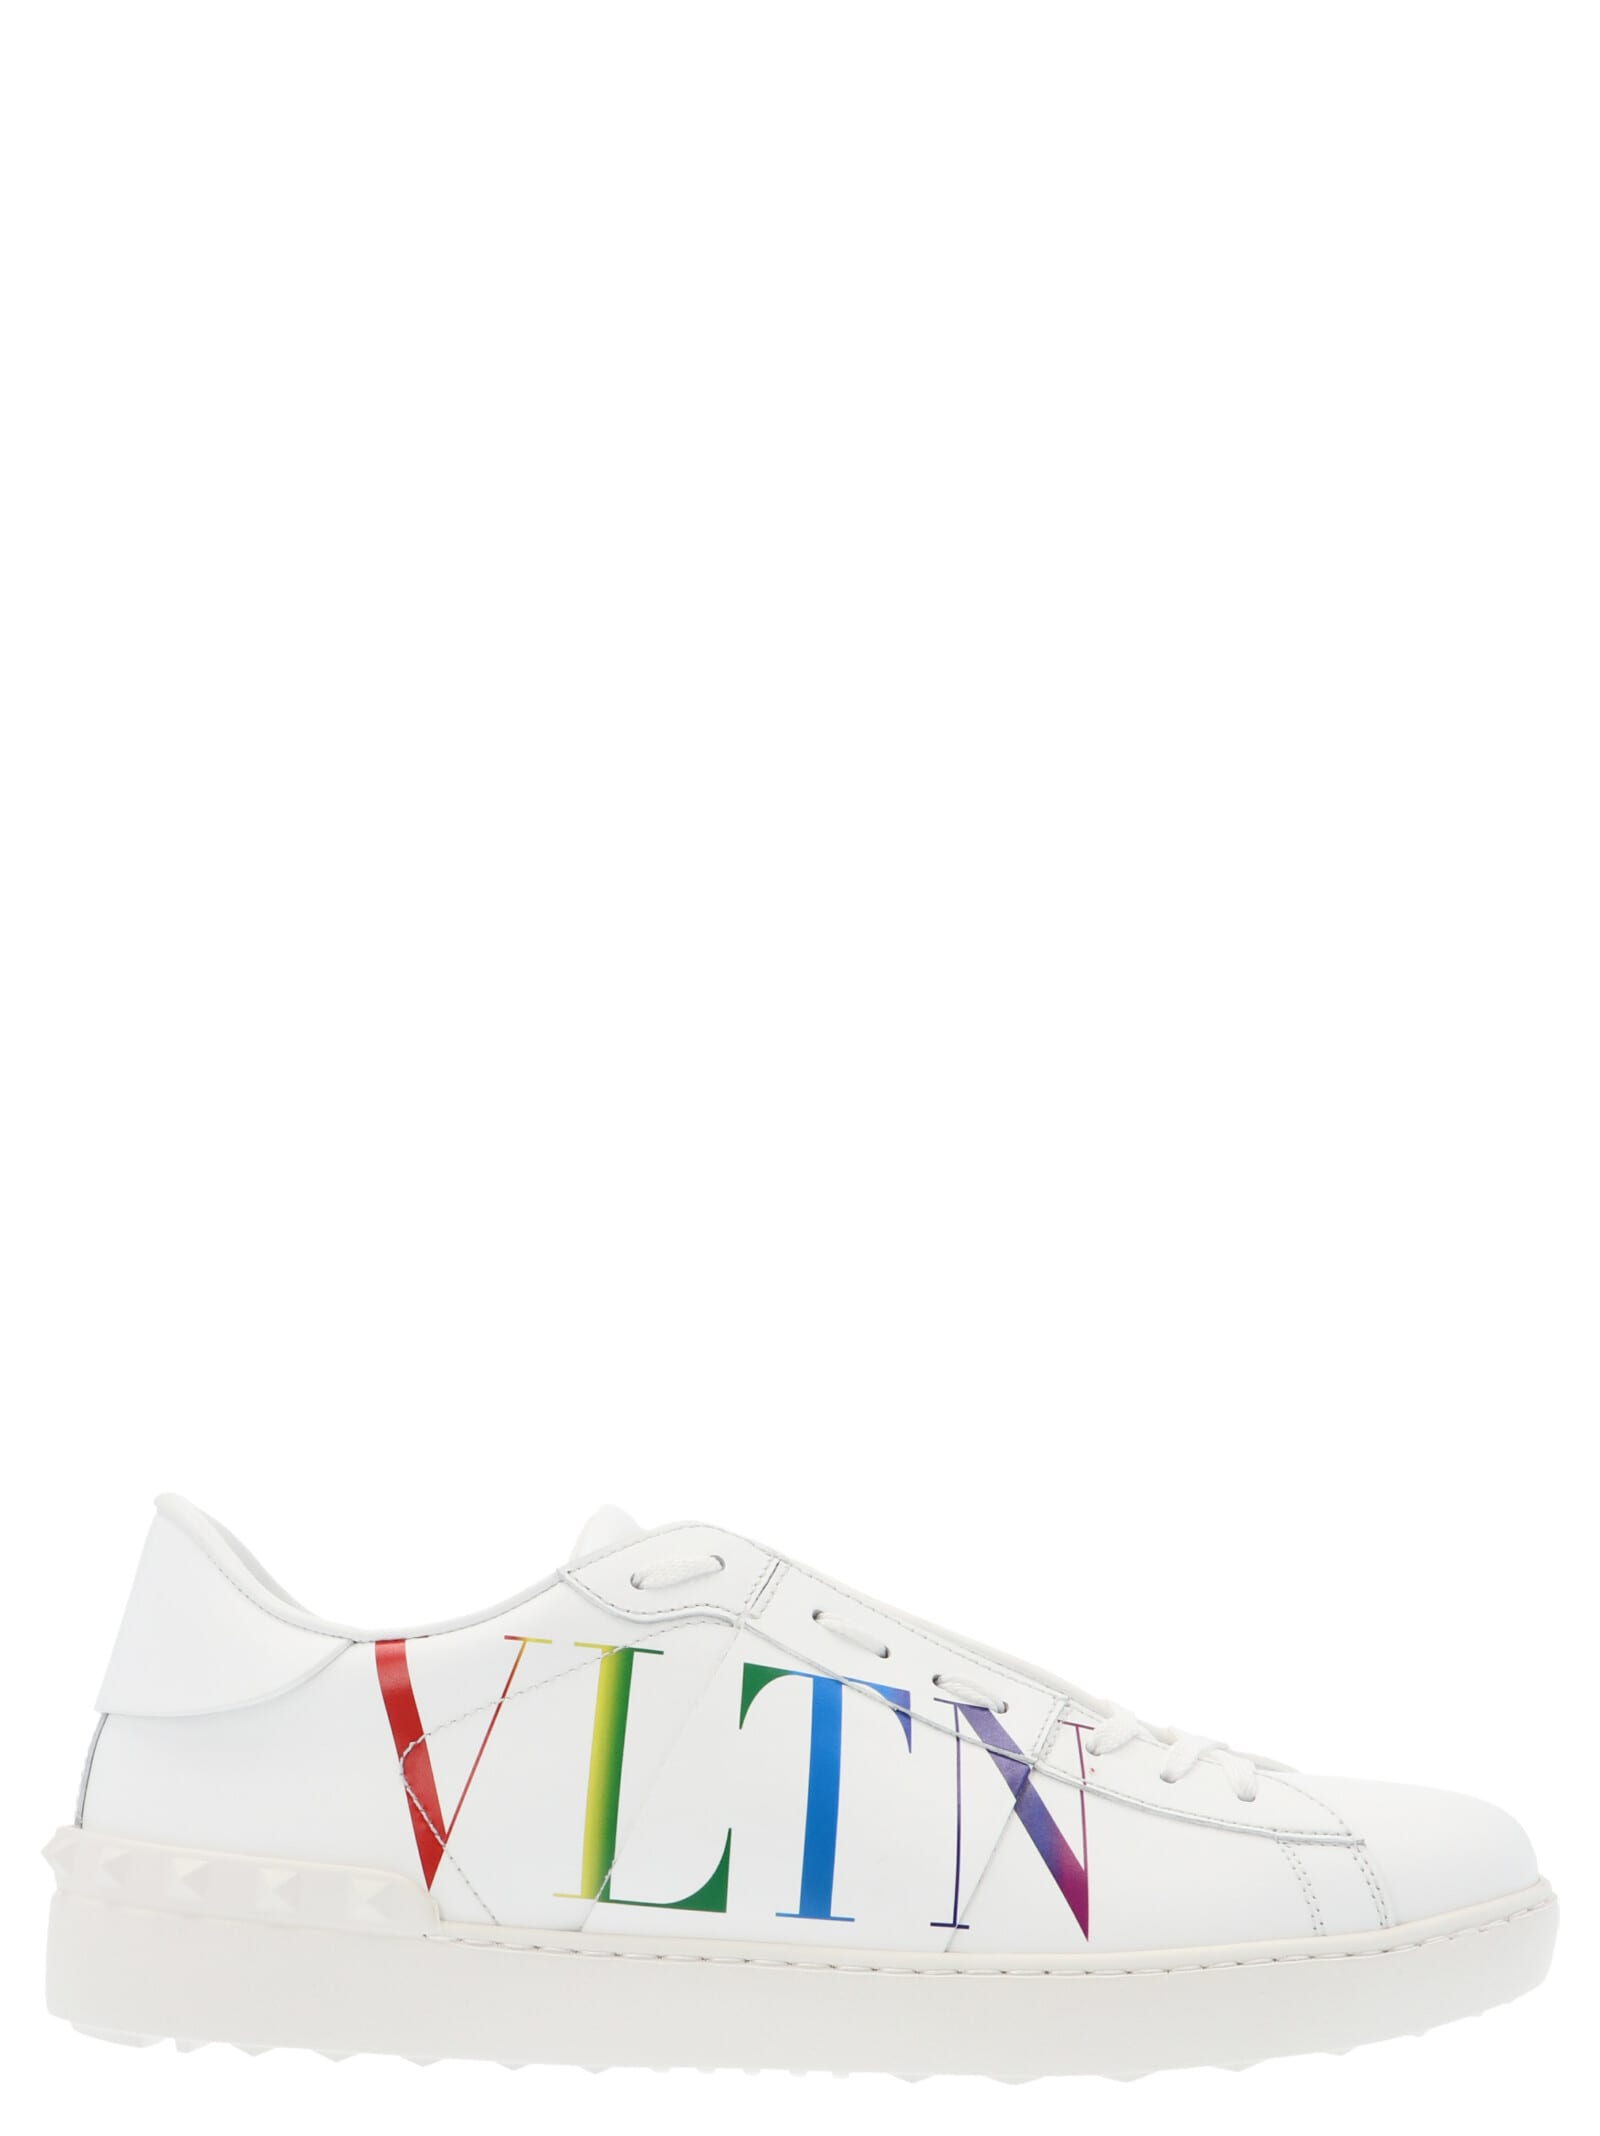 Valentino vltn Shoes